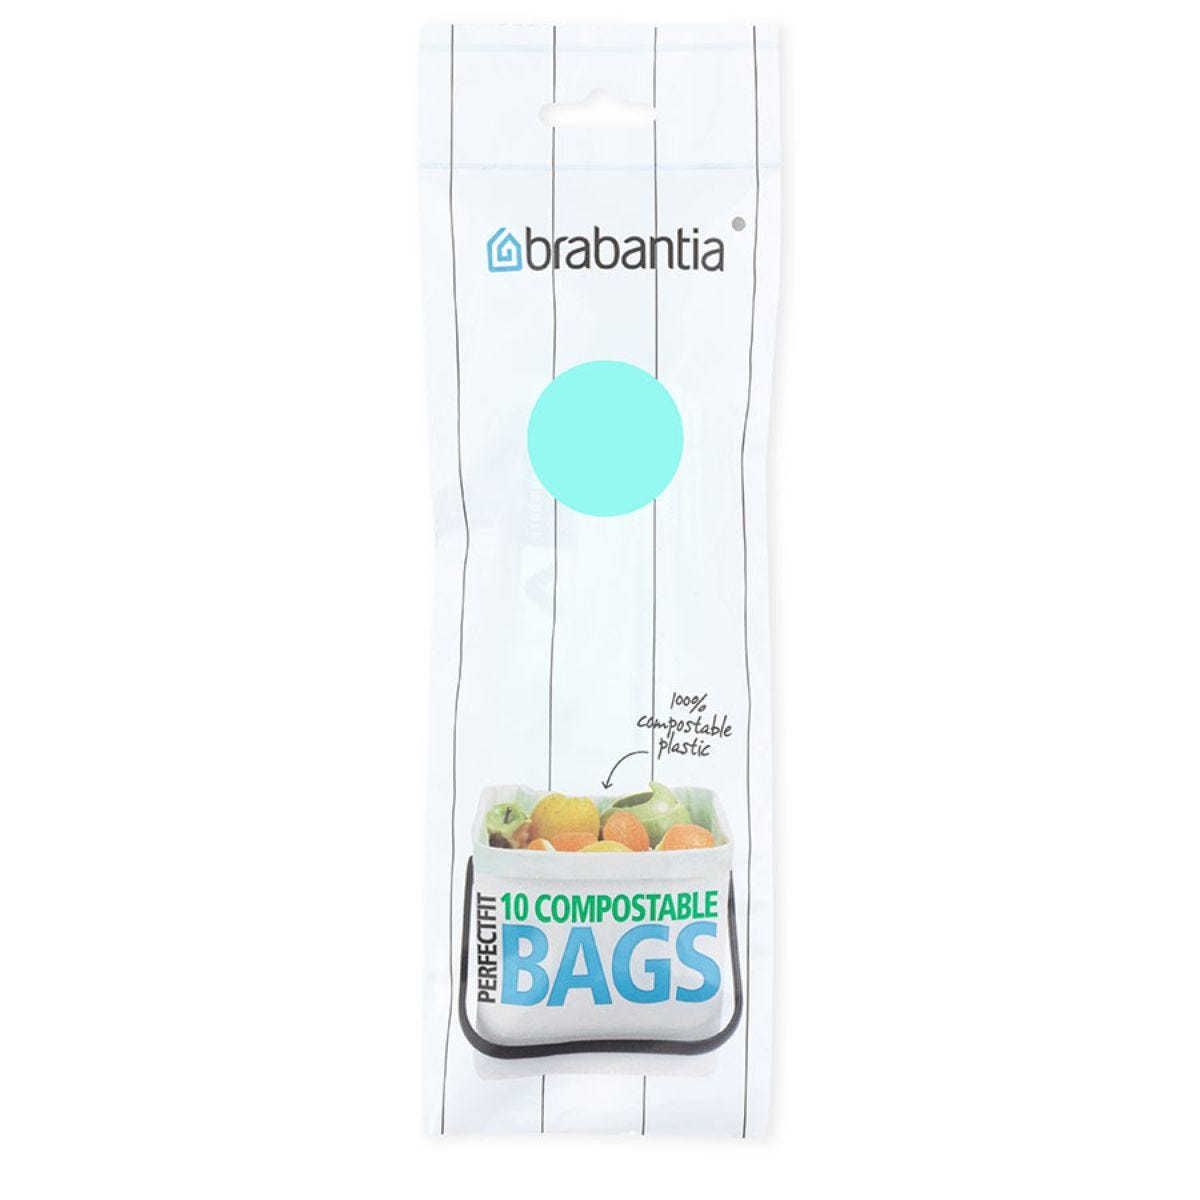 Brabantia PerfectFit 6L Compostable Bin Liners - Pack of 10